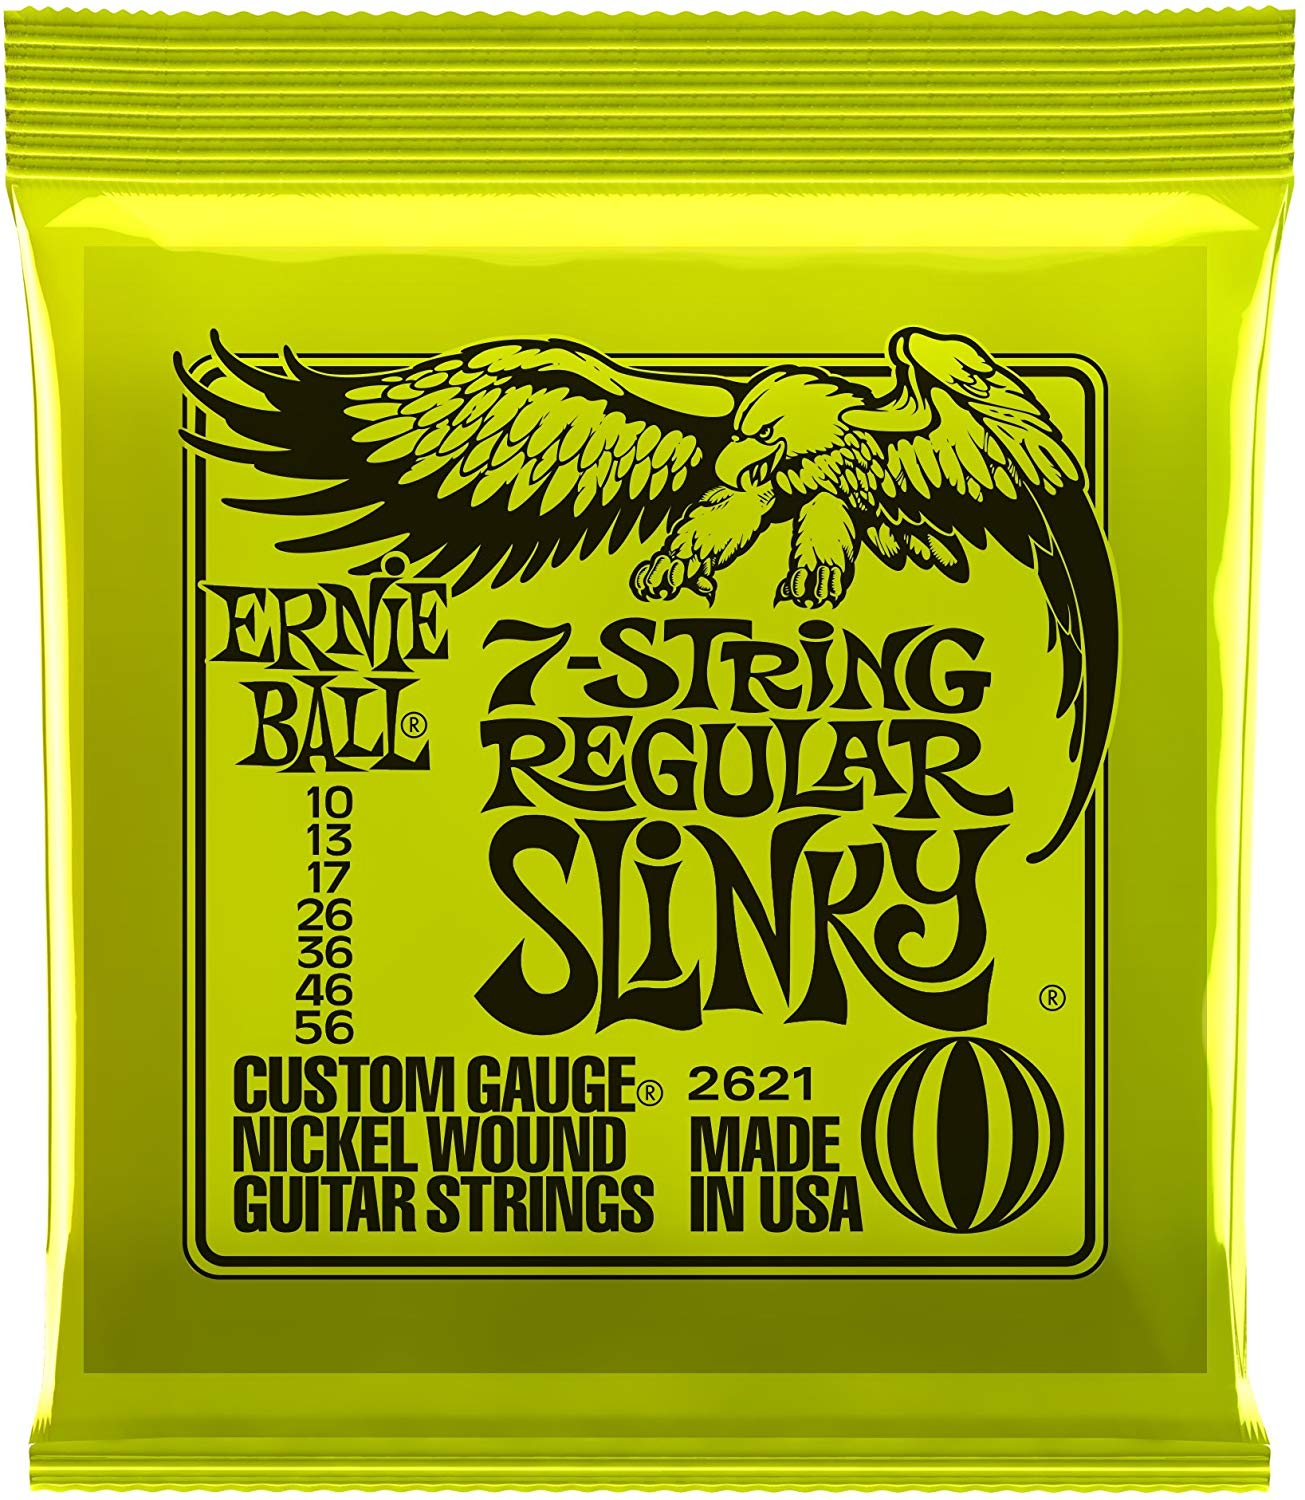 Ernie Ball 2621 Regular Slinky 7-string Nickel Wound Electric Guitar Strings - 10-56